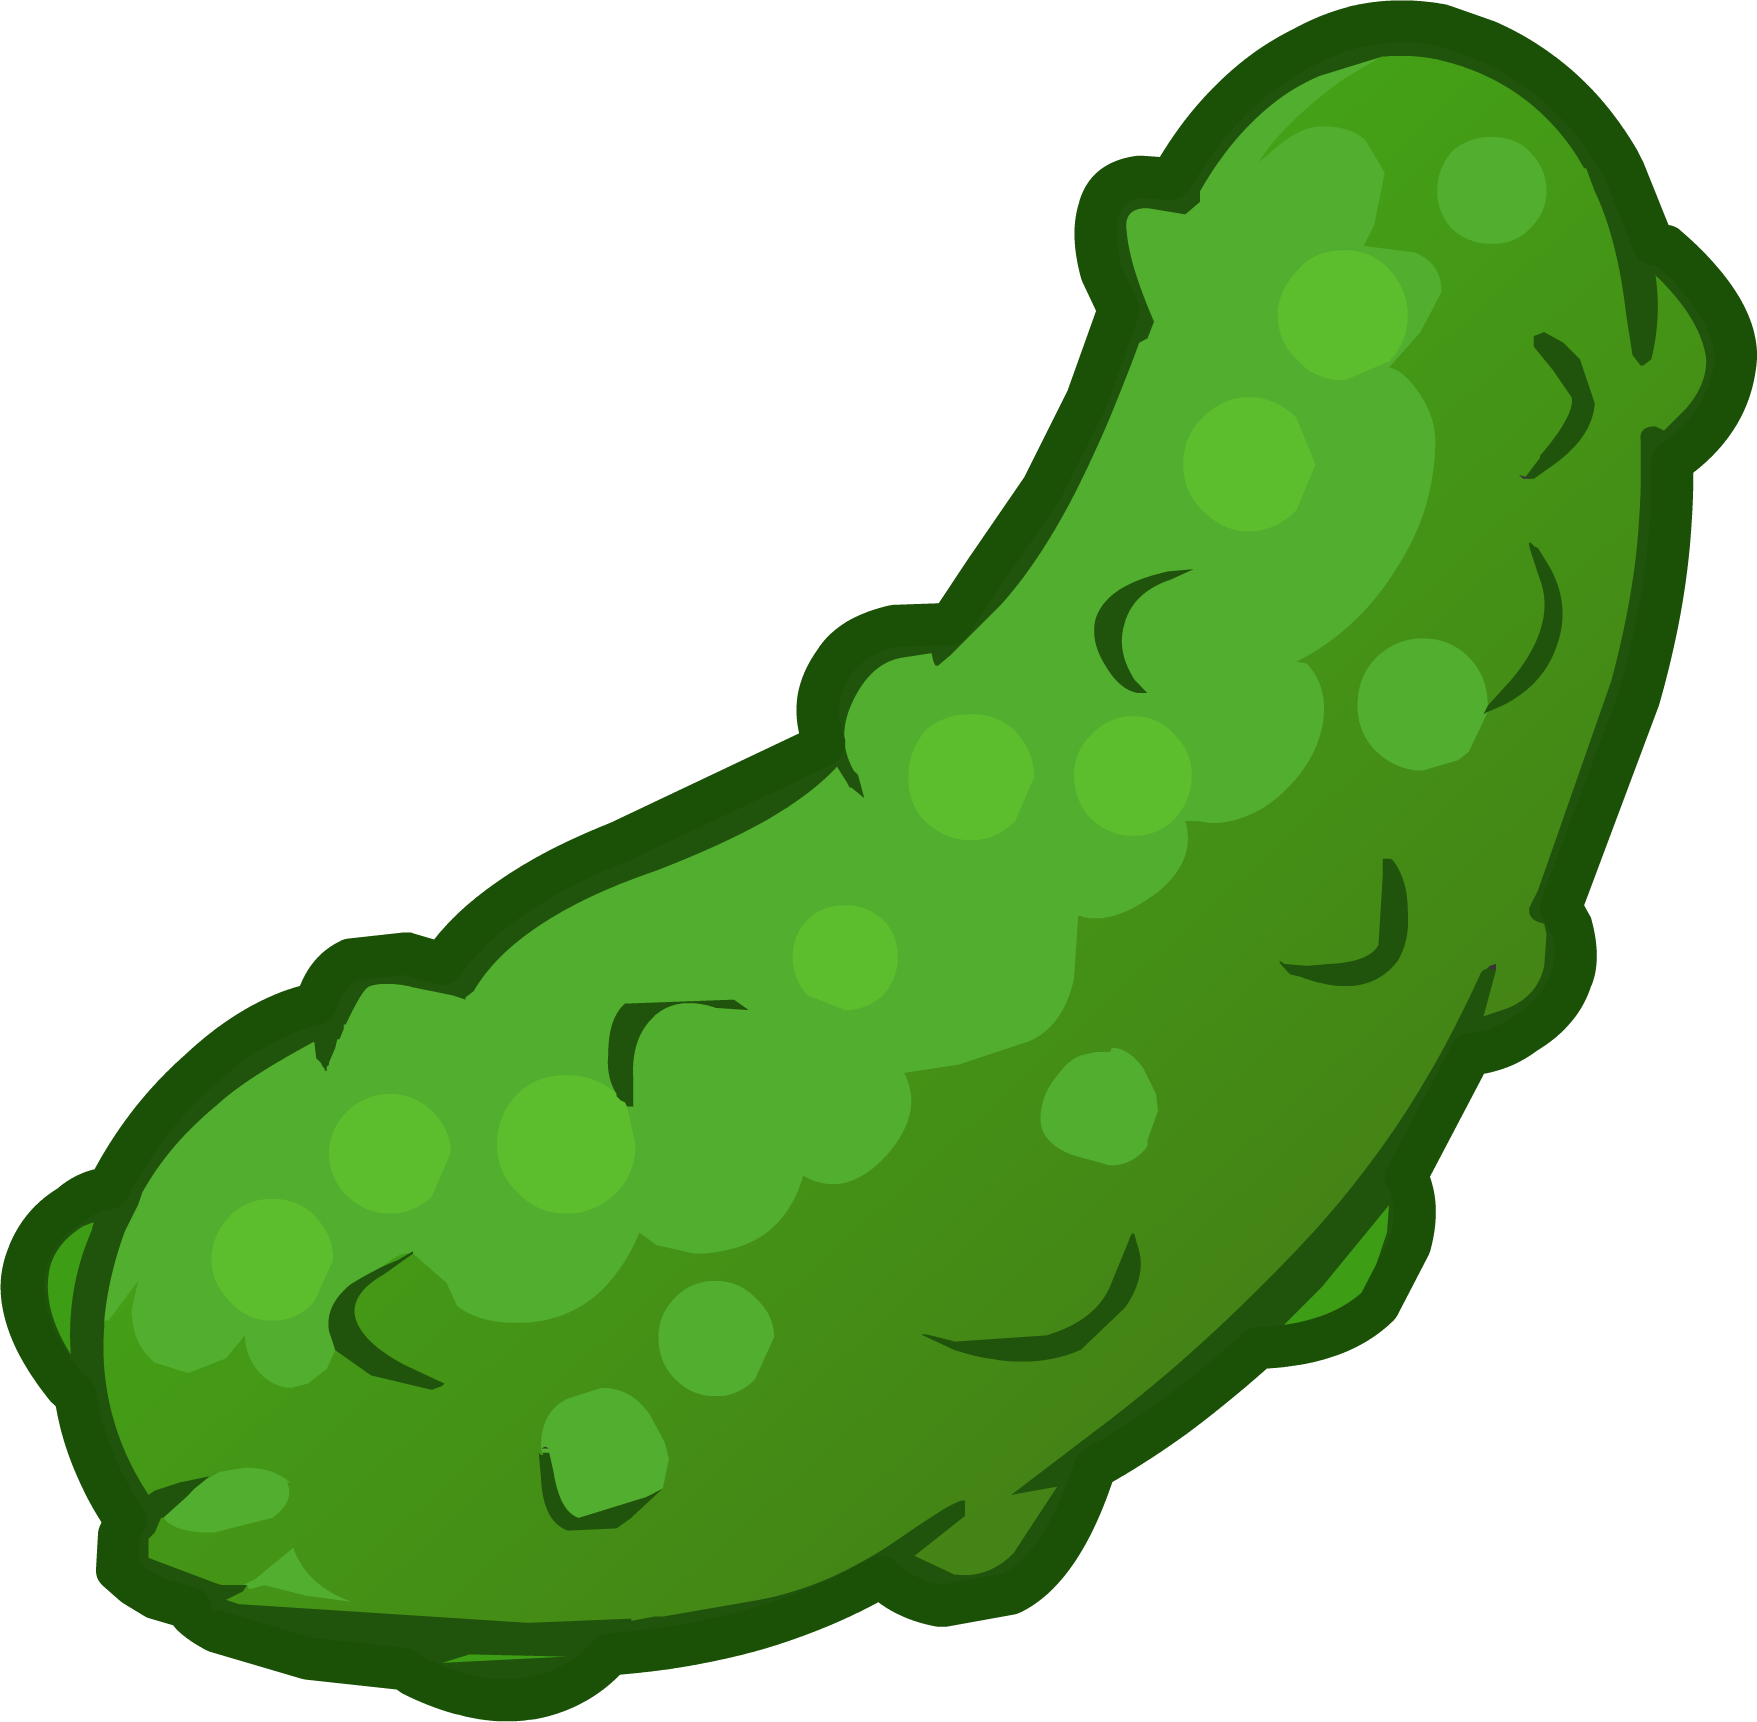 clipart freeuse Pickle drawing at getdrawings. Pickles clipart coloring page